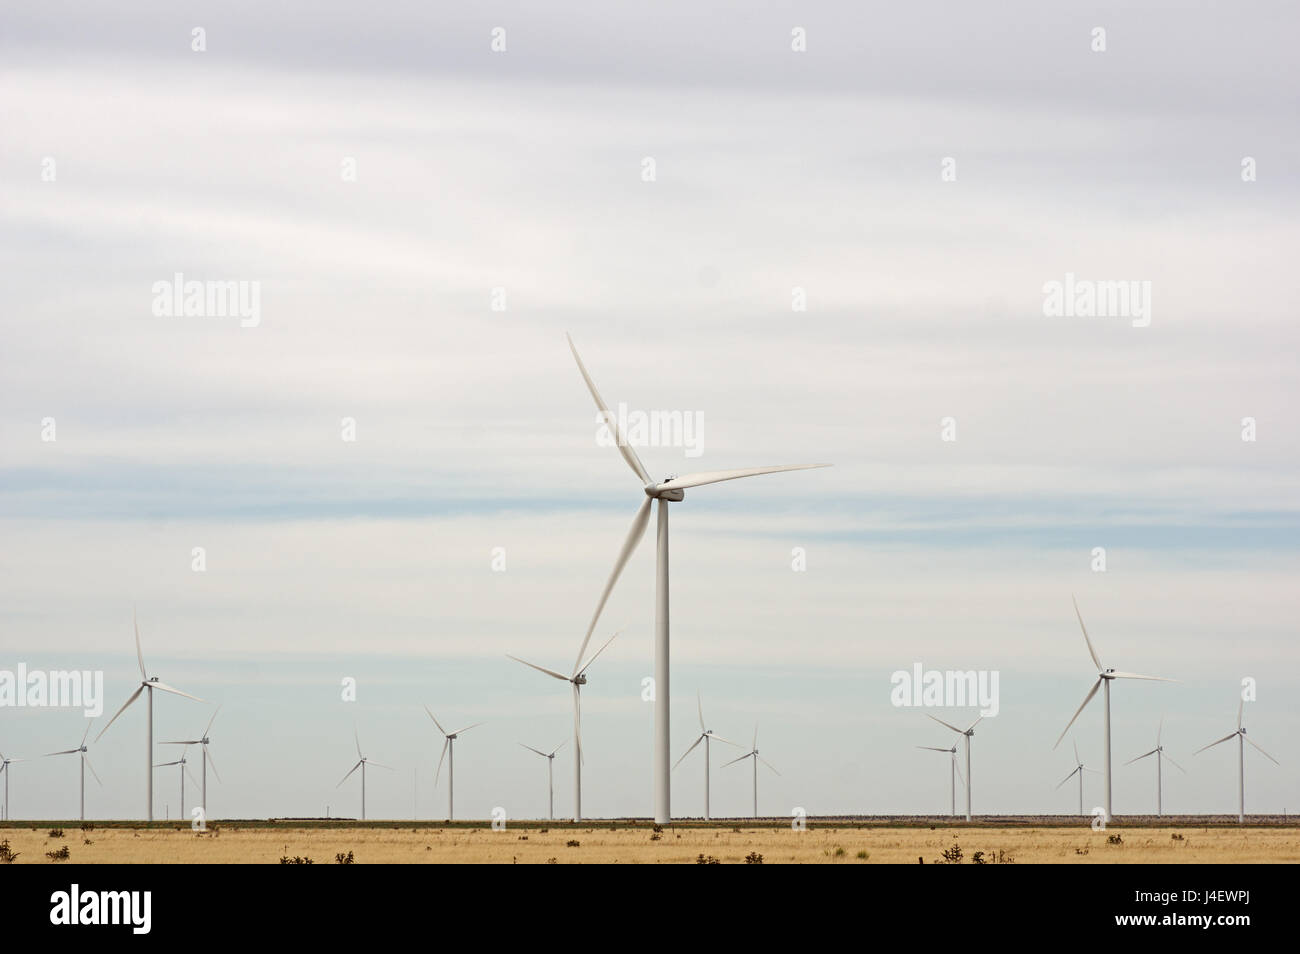 a west Texas field of wind turbines providing renewable energy - Stock Image